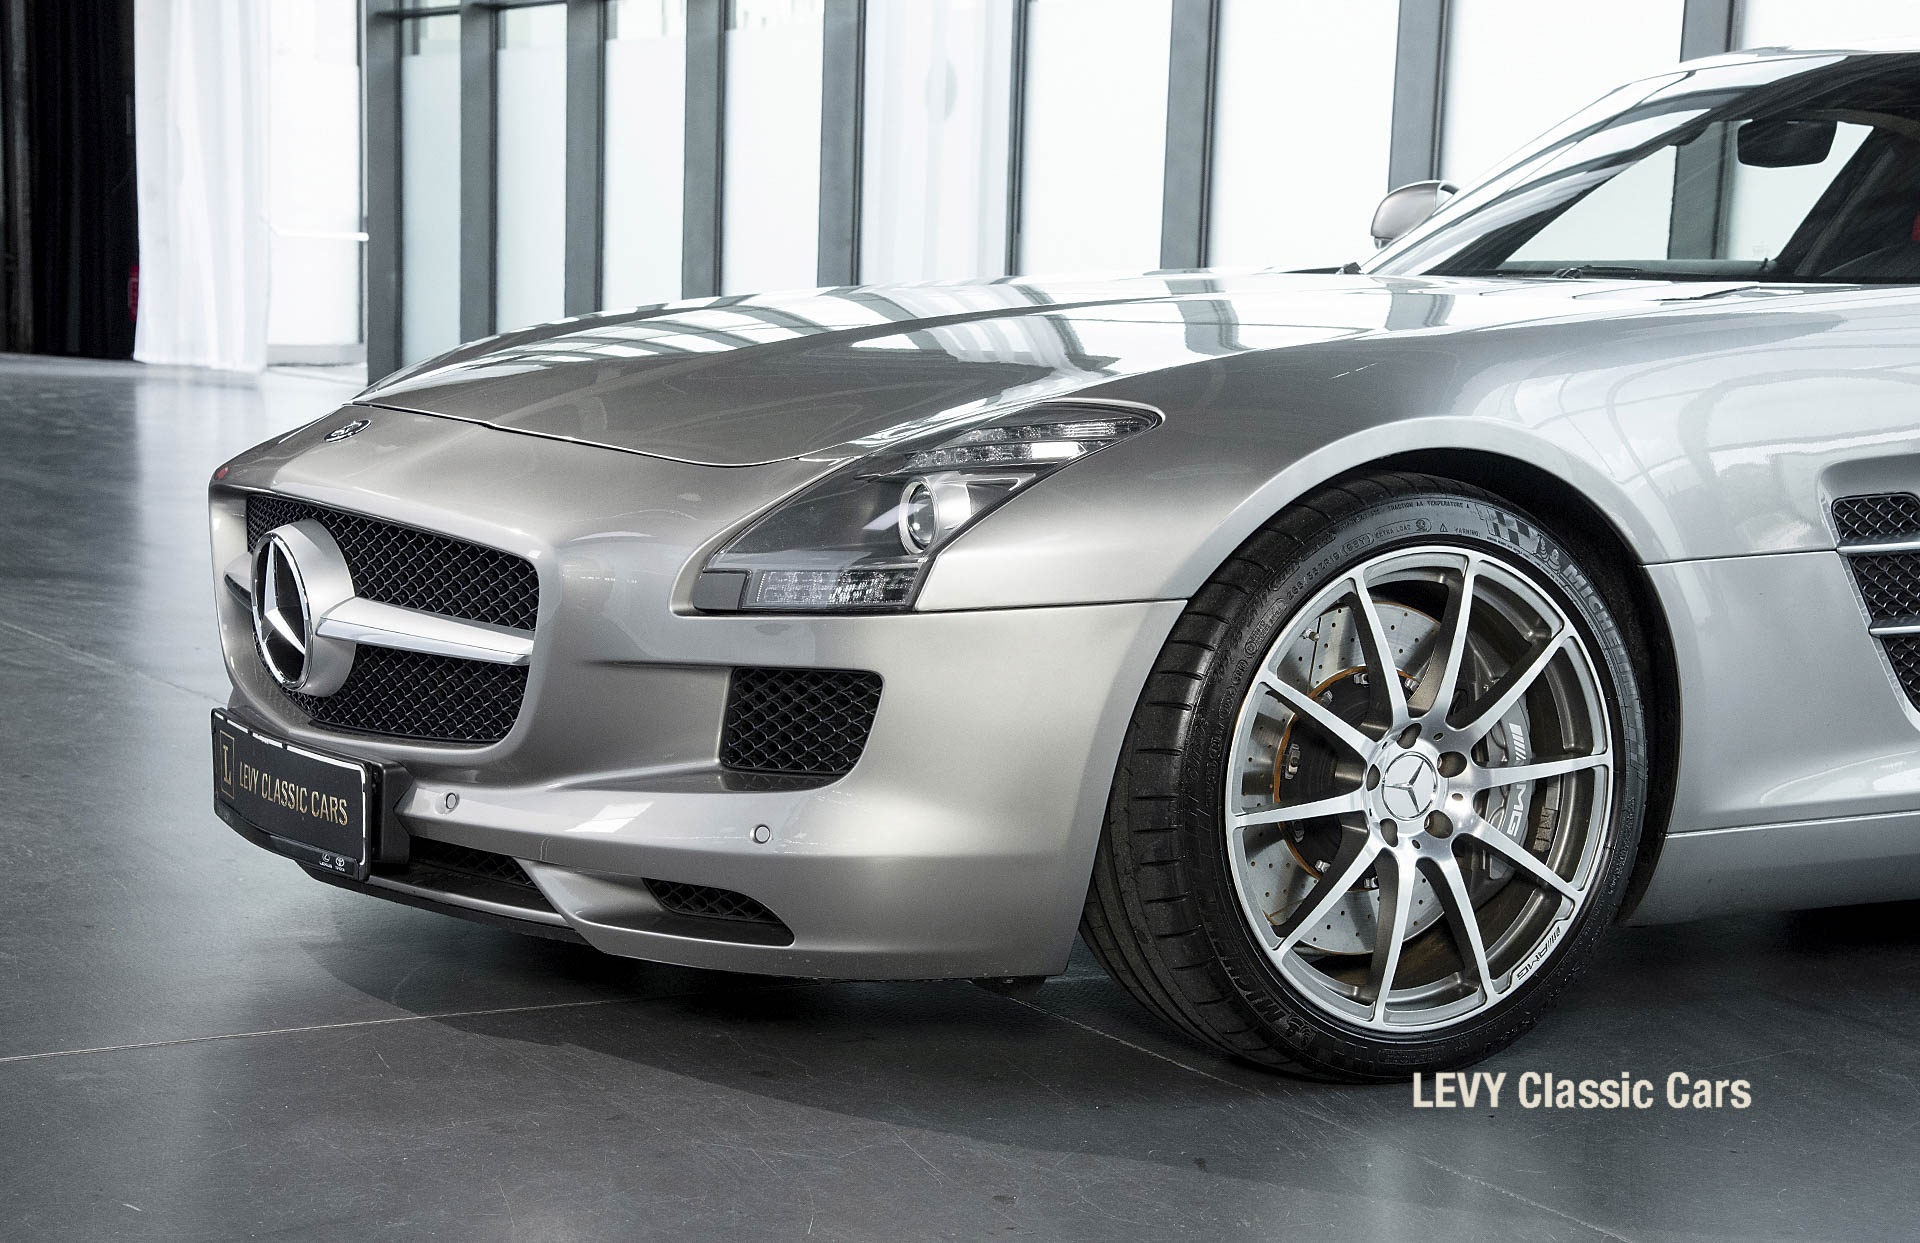 MB SLS AMG 6,3 Coupe 05633 093